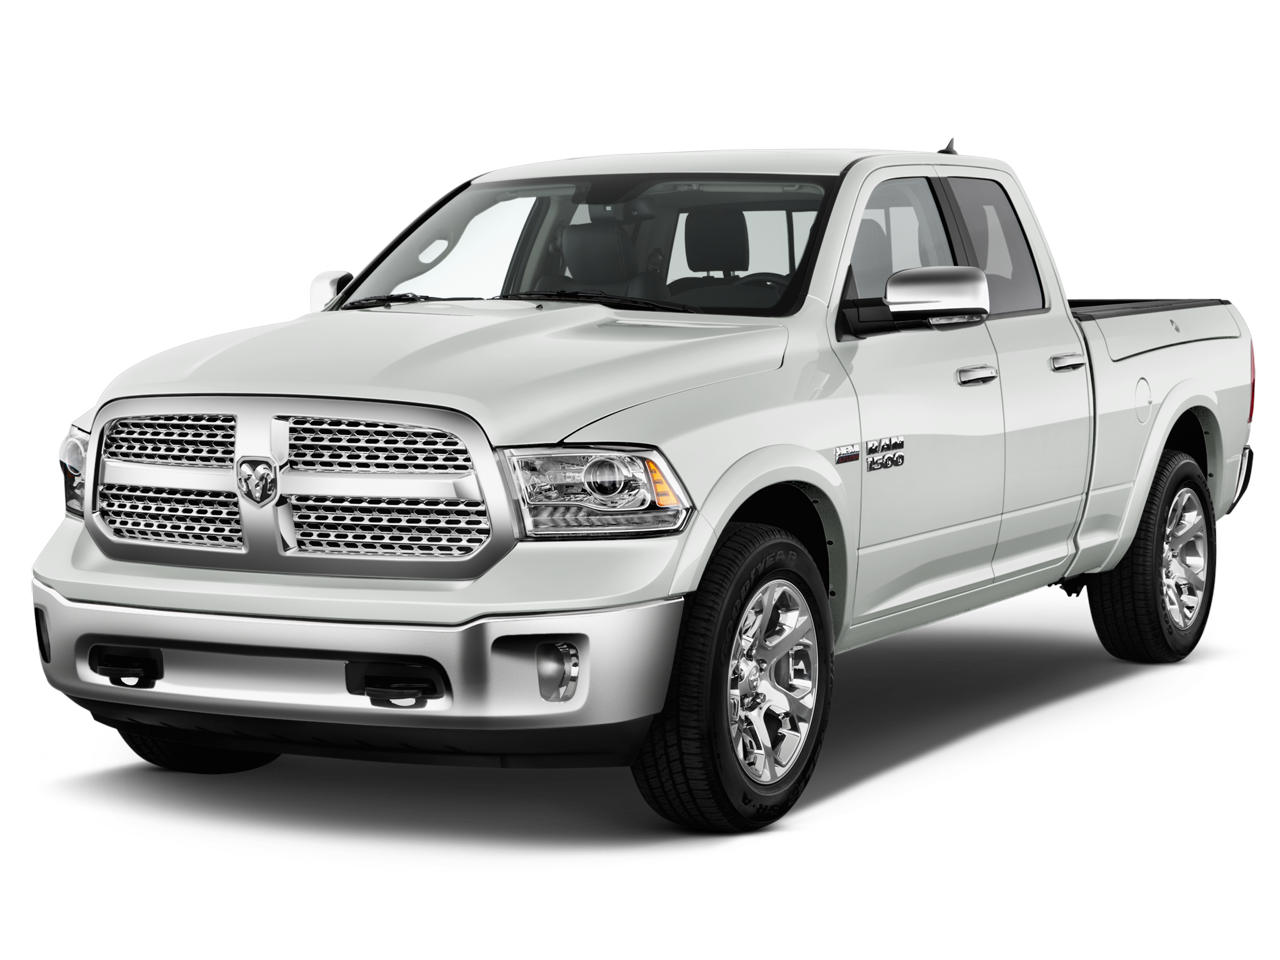 new 2017 ram 1500 express quad cab near gainesville ga hayes chrysler dodge jeep. Black Bedroom Furniture Sets. Home Design Ideas